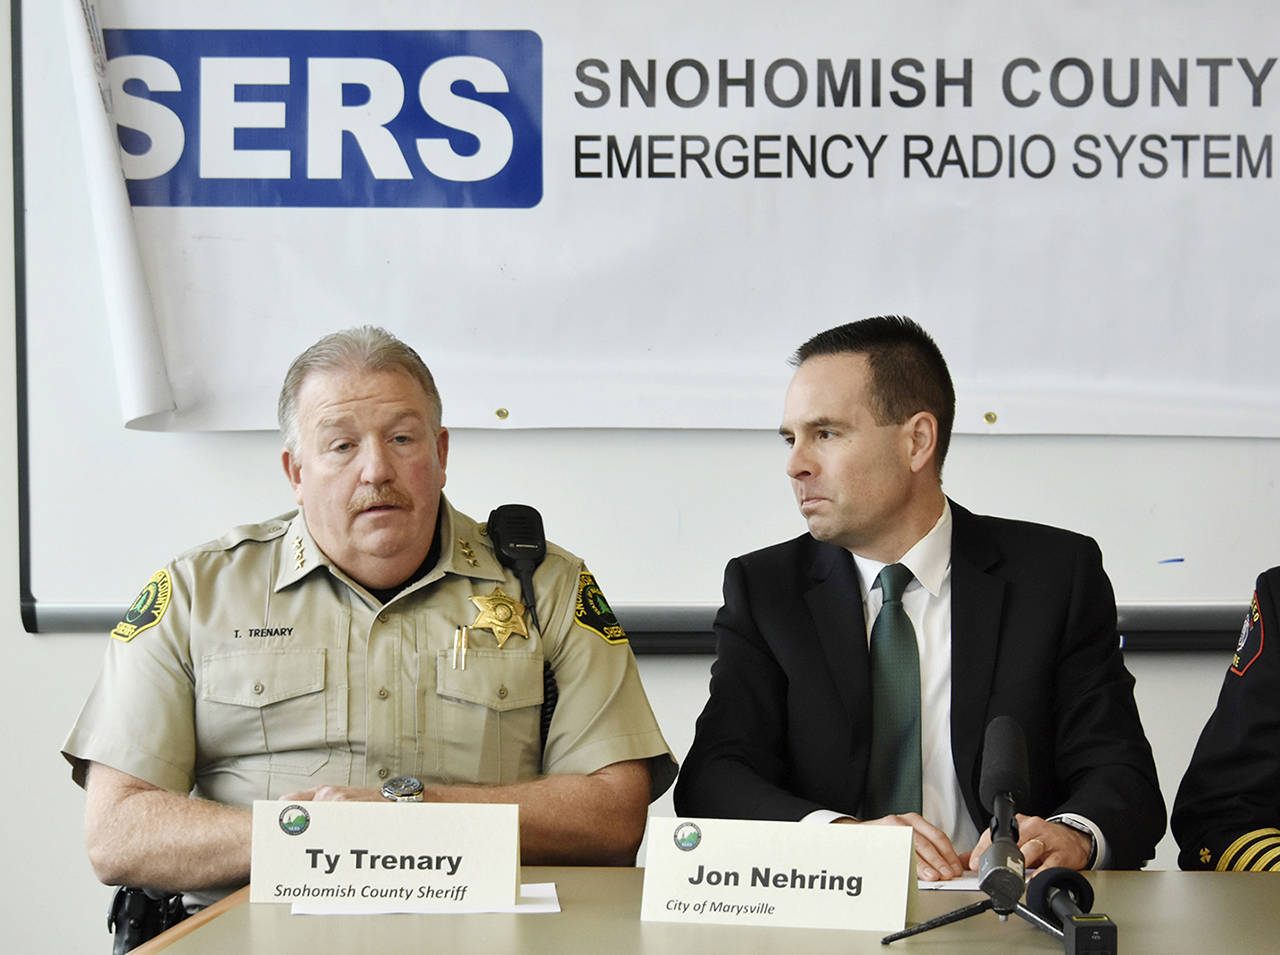 Snohomish County Sheriff Ty Trenary makes the case to upgrade an aging radio system for police and firefighters at a press conference Thursday. Jon Nehring, mayor of Marysville and board president of the Snohomish County Emergency Radio System, announced a $70 million plan for digital radios and radio towers in Snohoimsh County. (Caleb Hutton / The Herald)